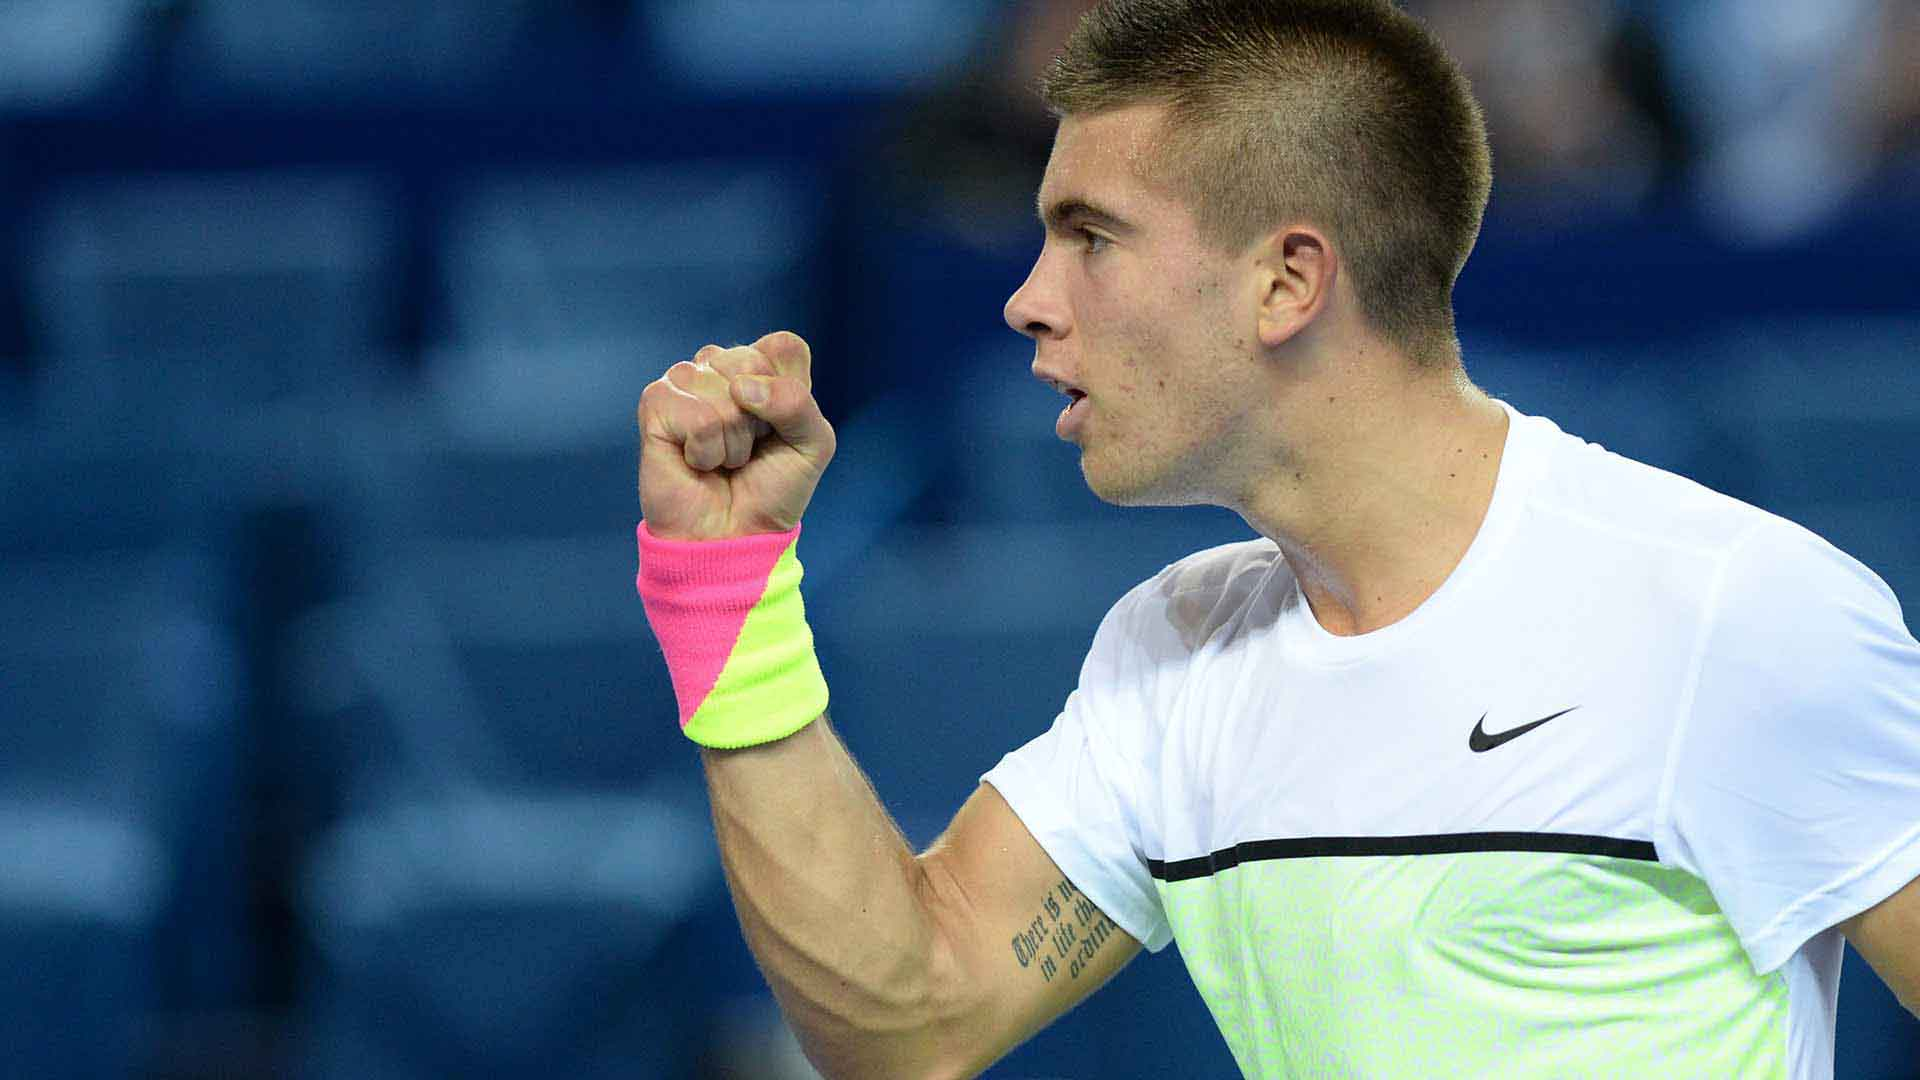 Borna Coric launches his Marseille campaign with a 6-4, 7-5 win over Denis Istomin.